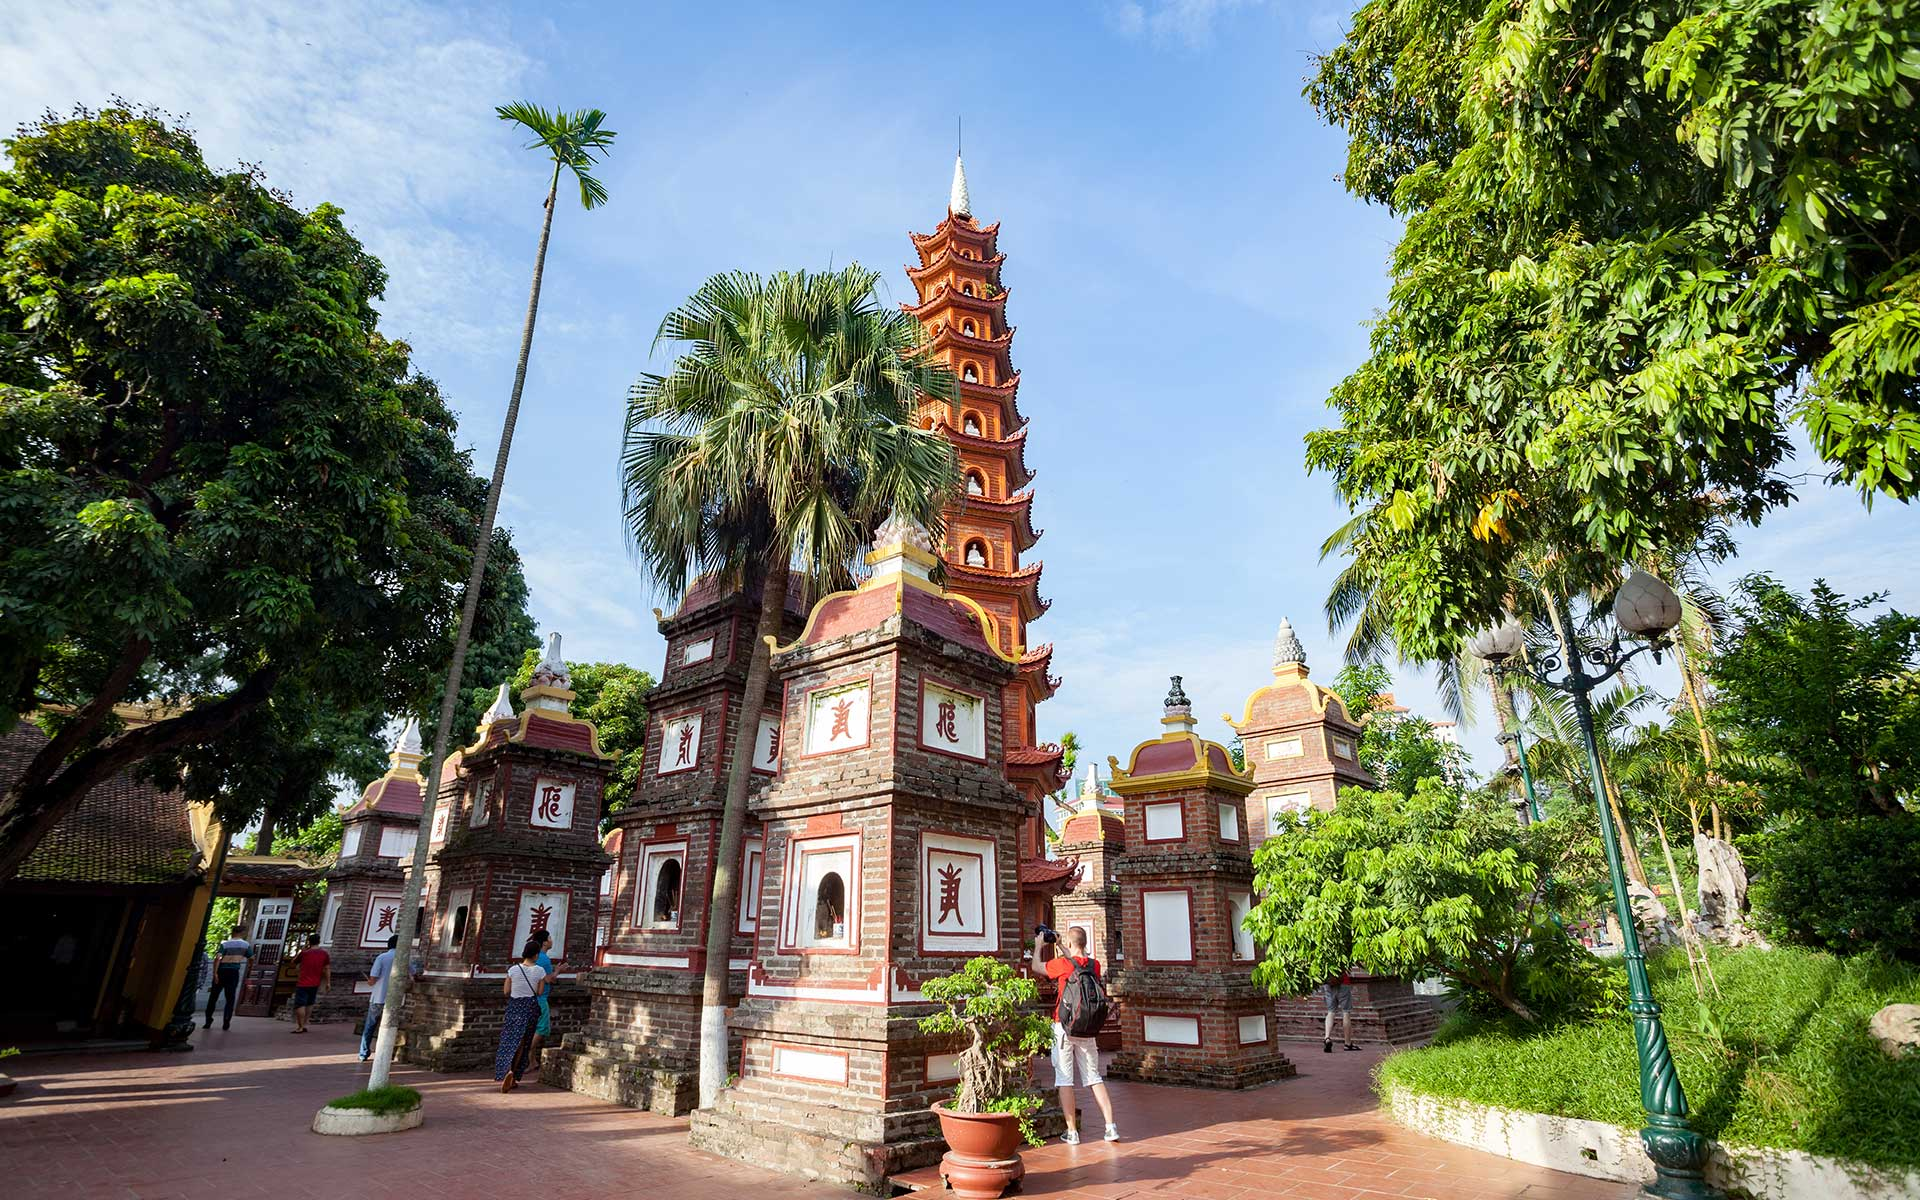 Bao Thap - Architecture of Tran Quoc Pagoda